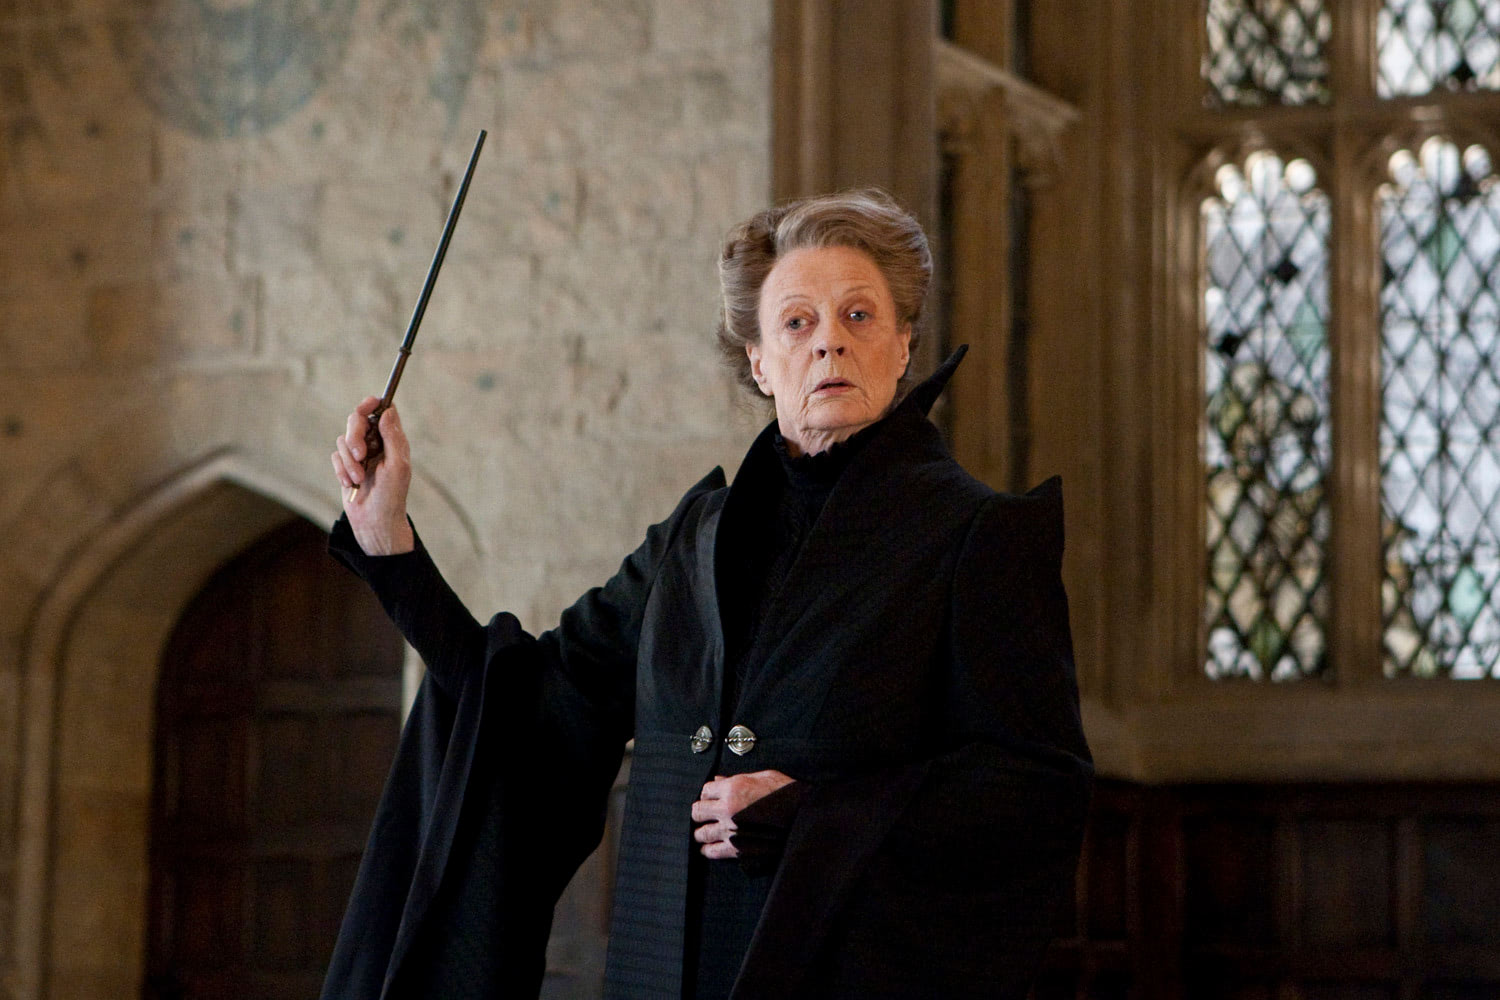 McGonagall waves her wand